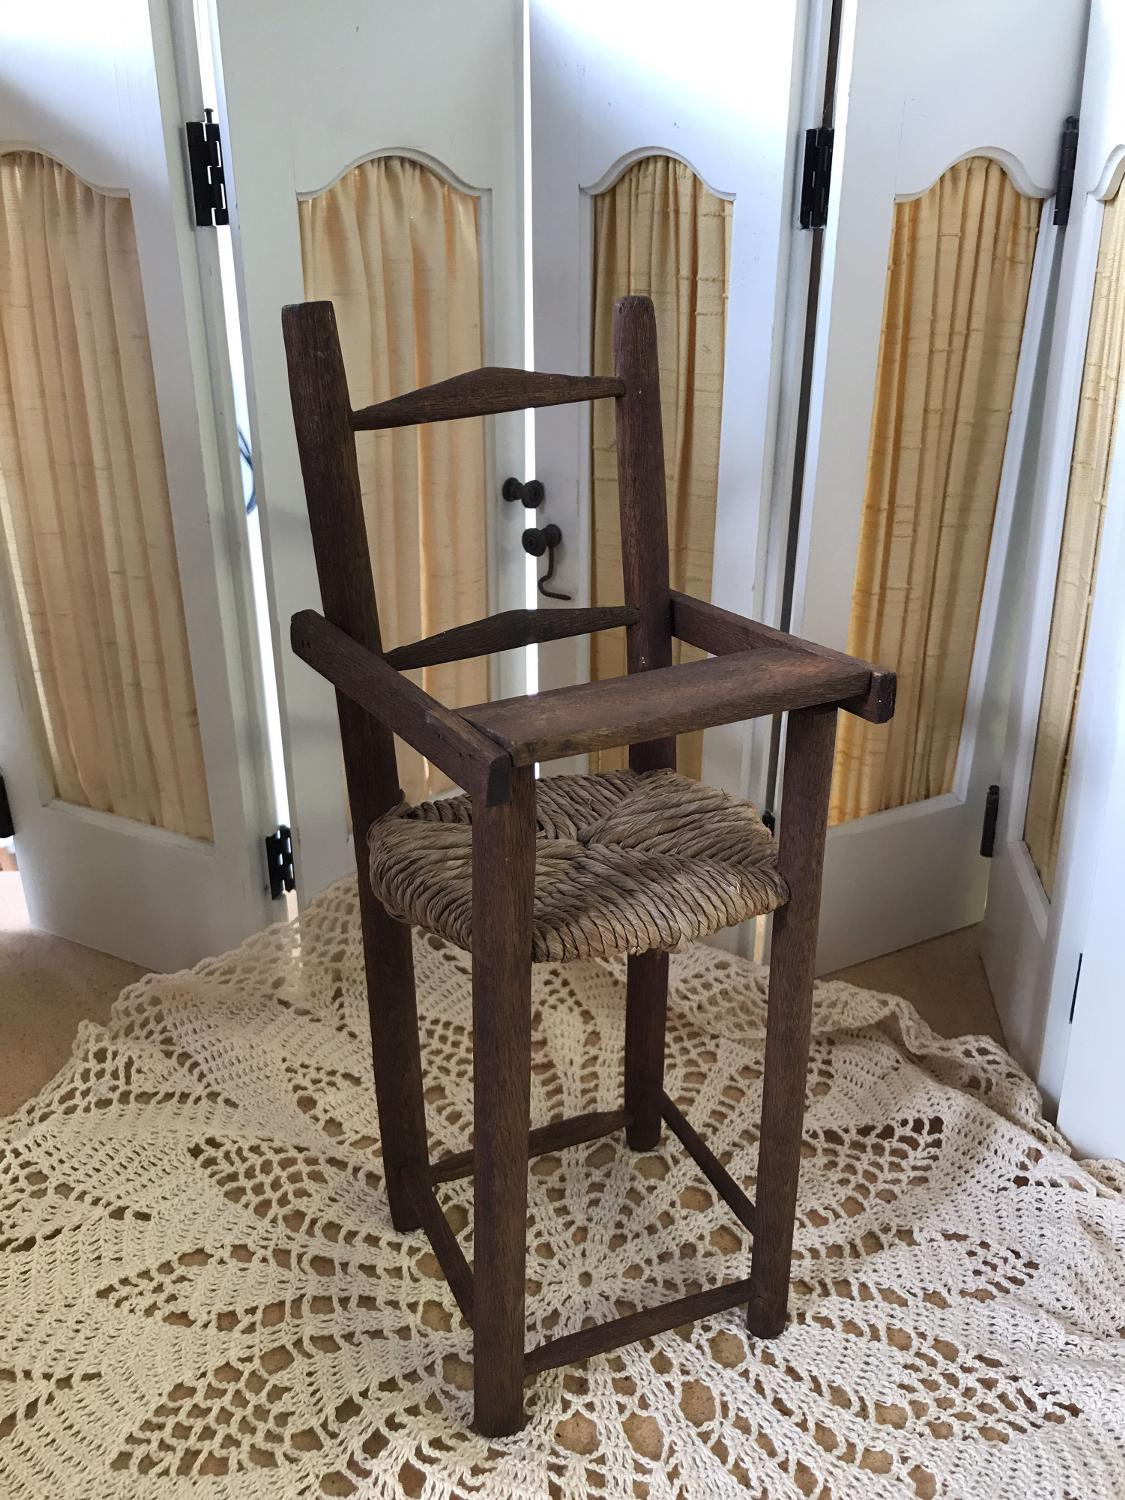 Best An Old Wood Wicker High Chair For A Doll 15 High X 6 Wide X 5 Deep For Sale In Sumter